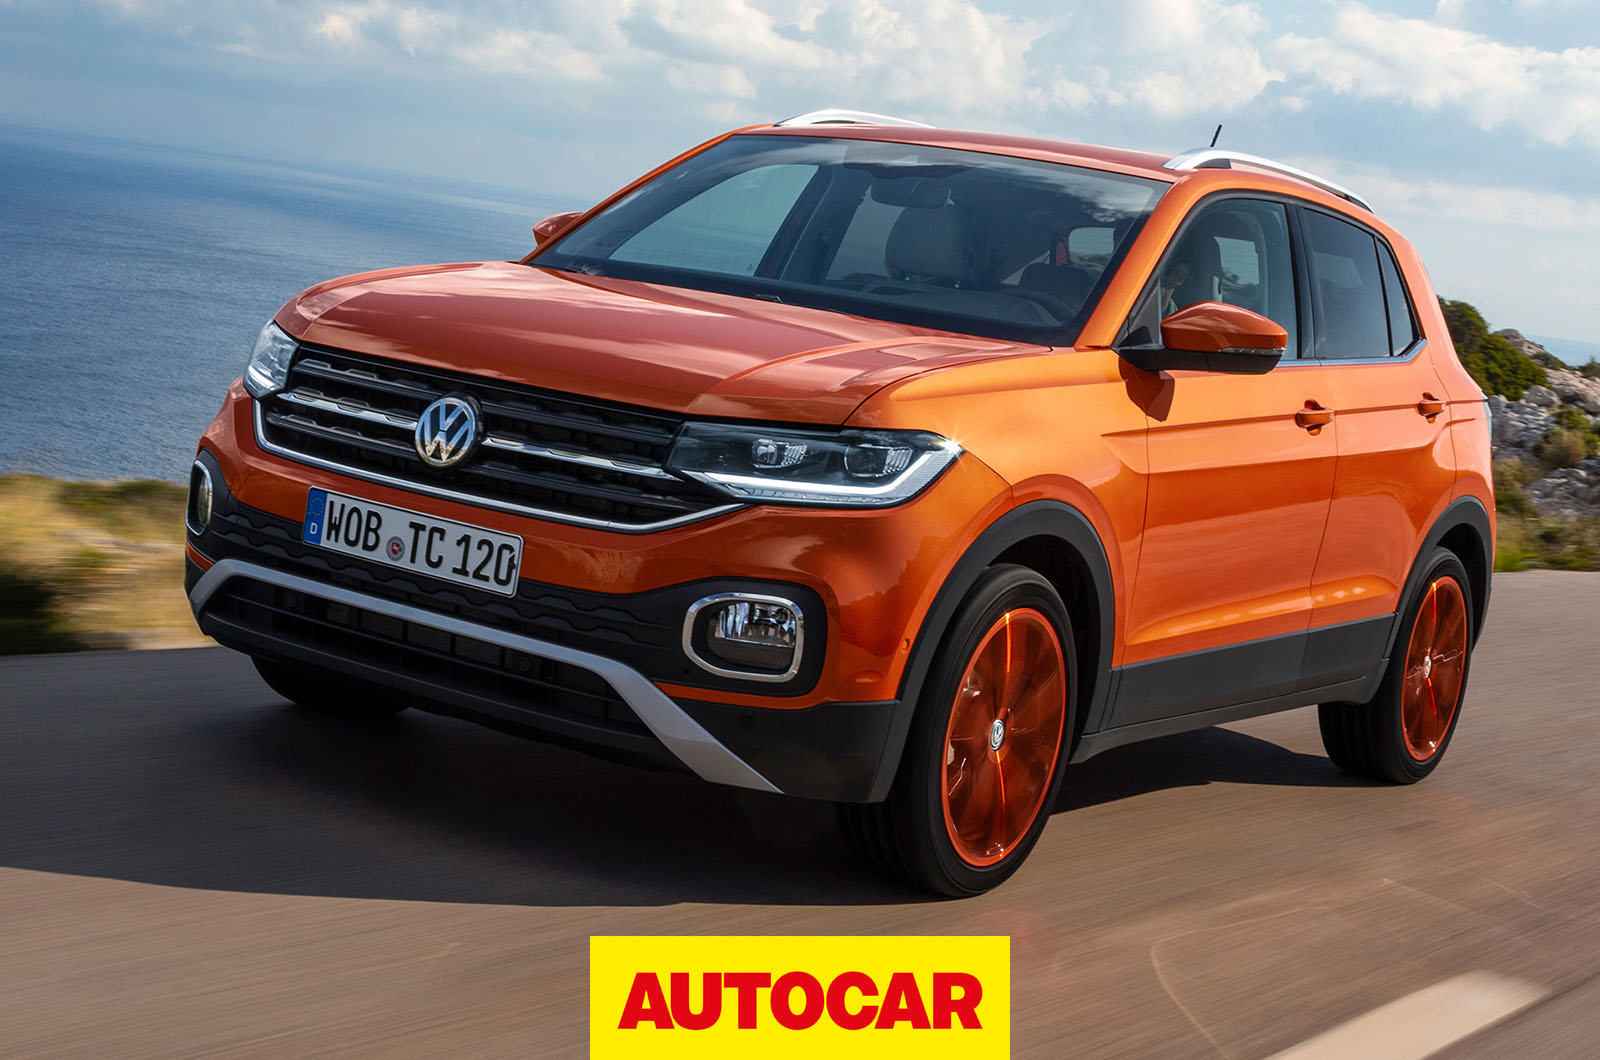 2019 Volkswagen T-Cross Review - The best small SUV on the ...